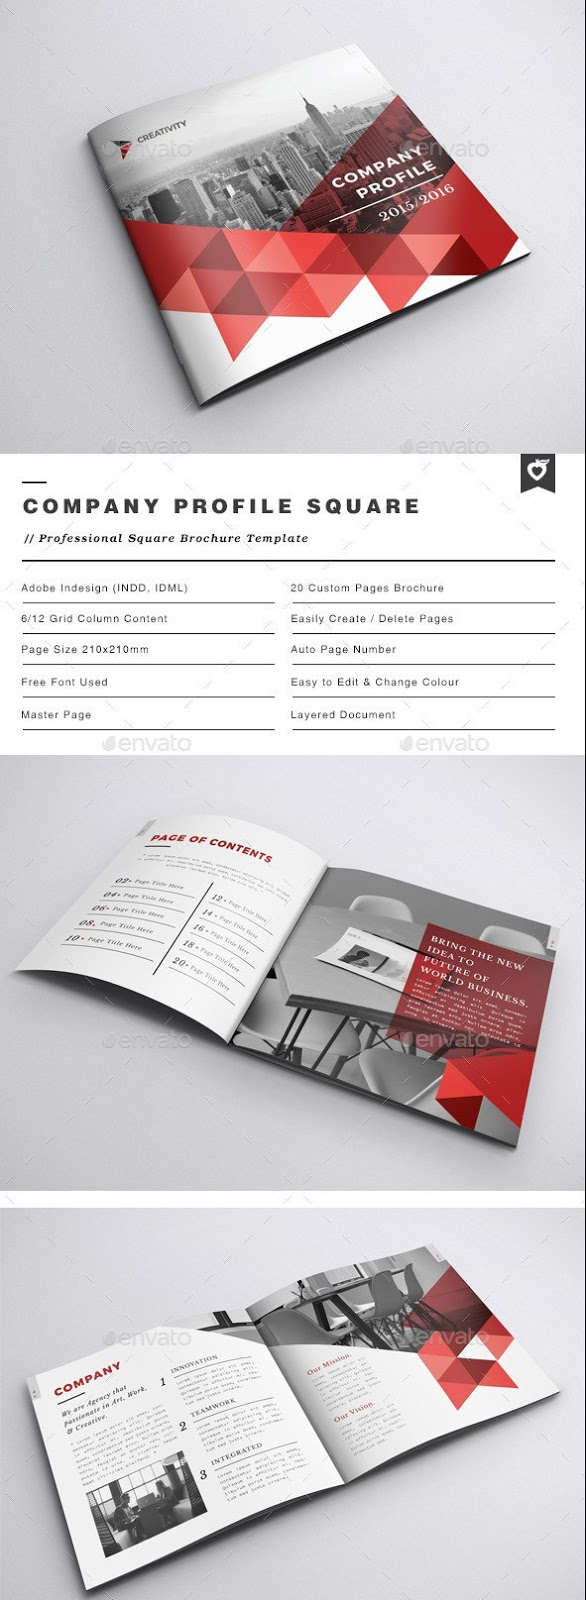 100 free premium brochure templates photoshop psd for Indesign brochure templates free